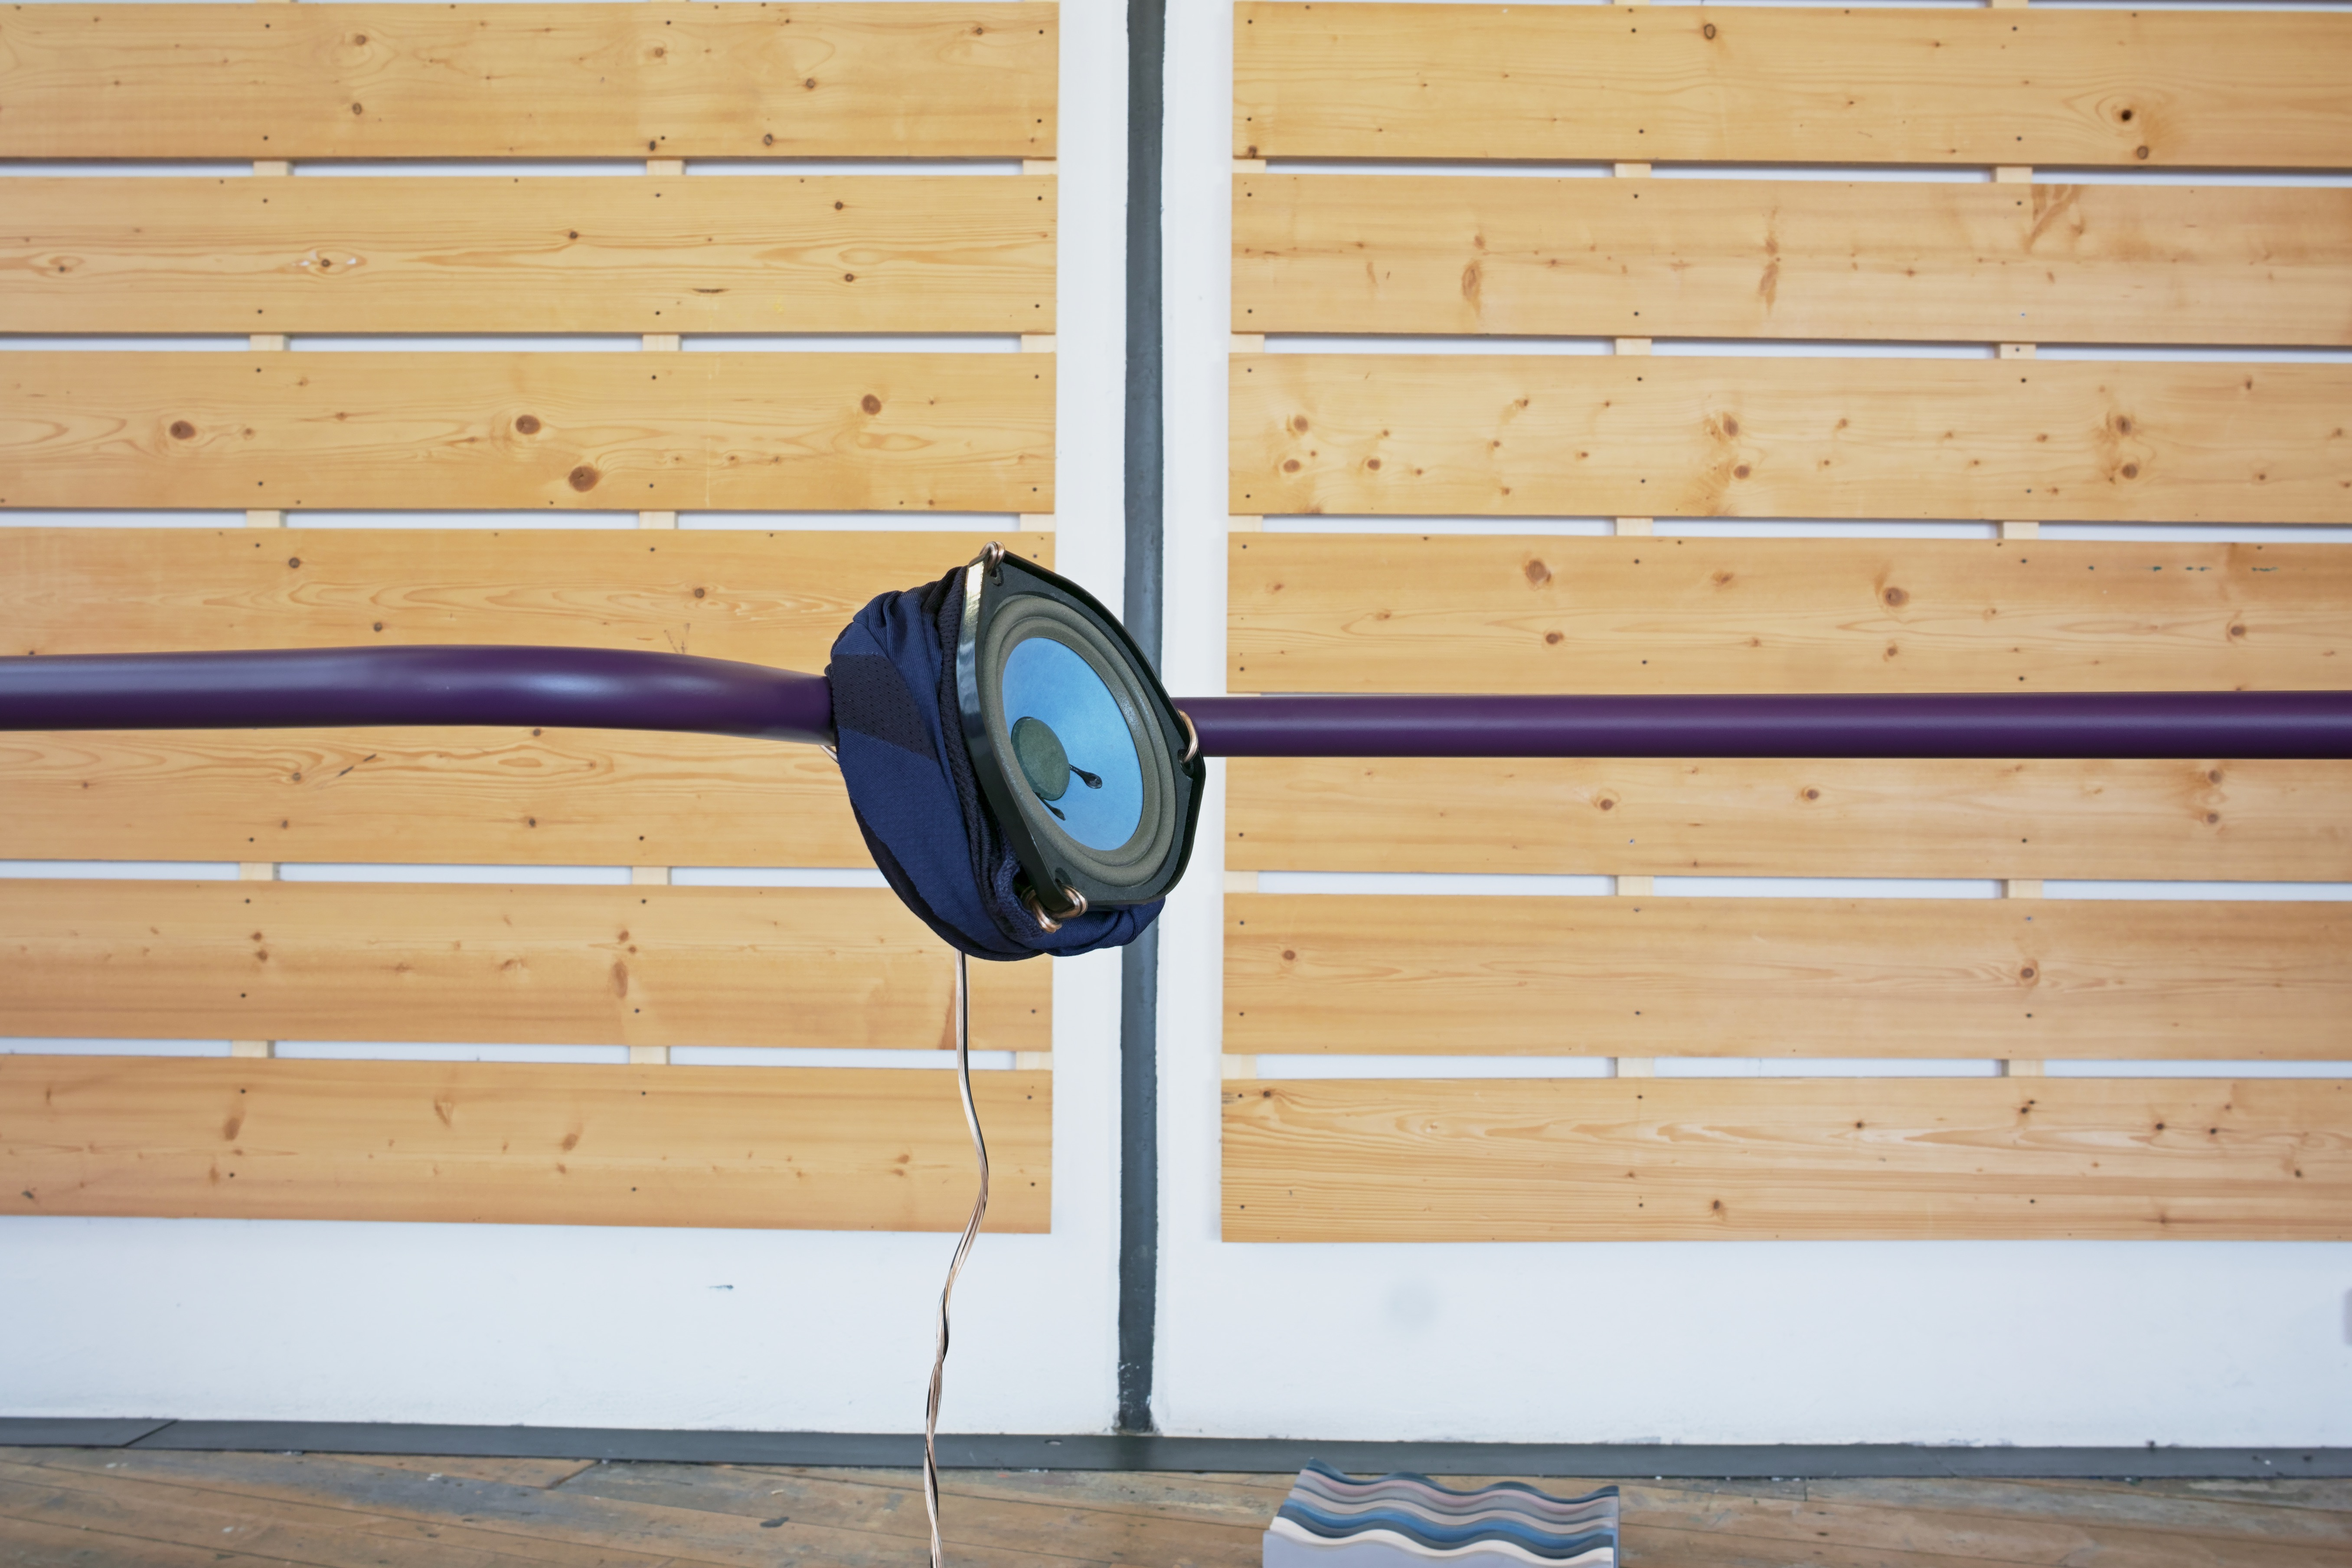 speaker, powder-coated bent metal structures, audio cable, Polyester fabric